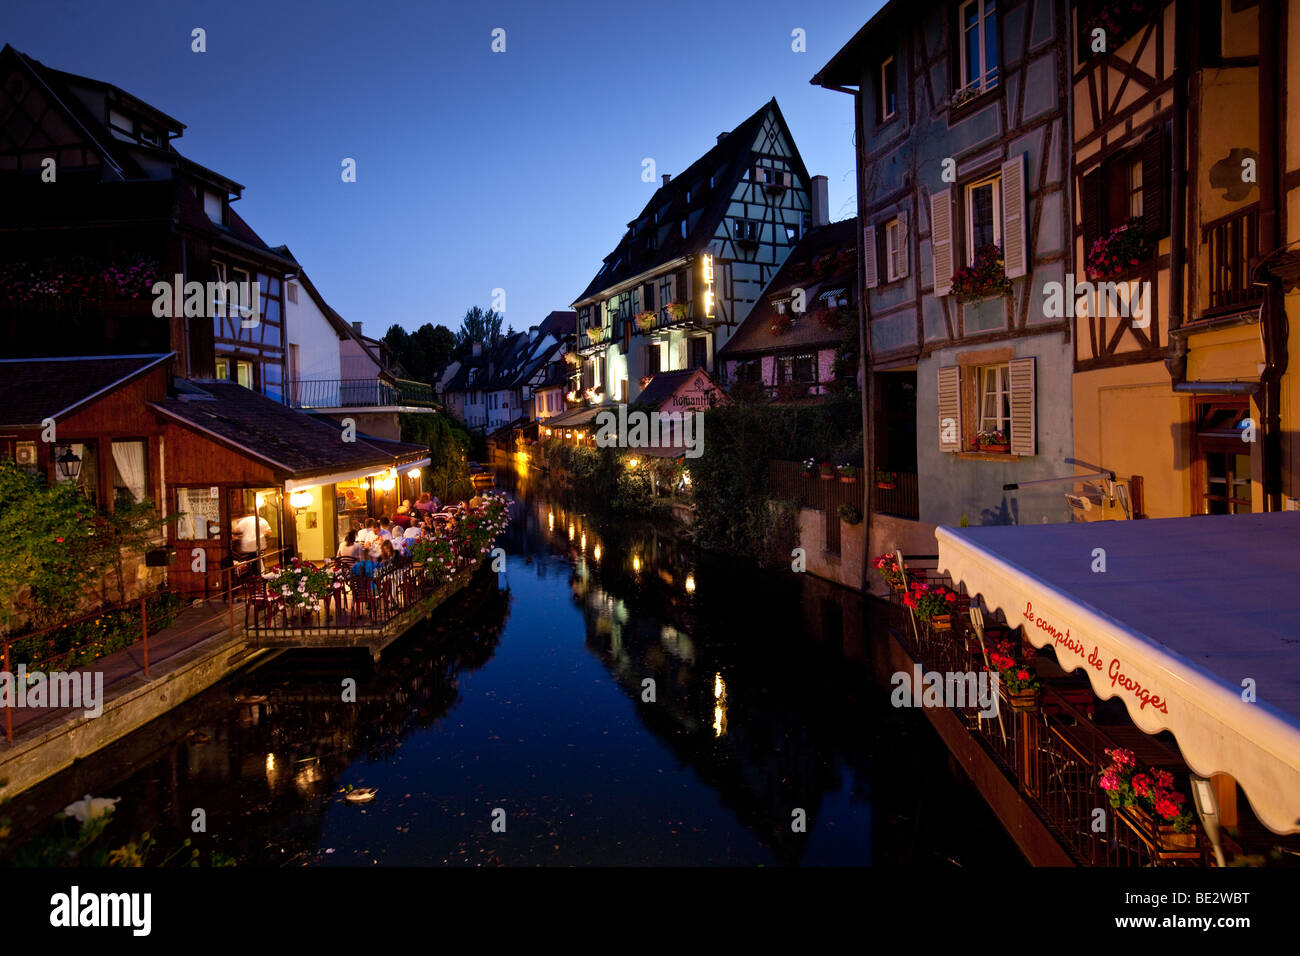 Historic centre with restaurants, Colmar, Alsace, France, Europe Stock Photo